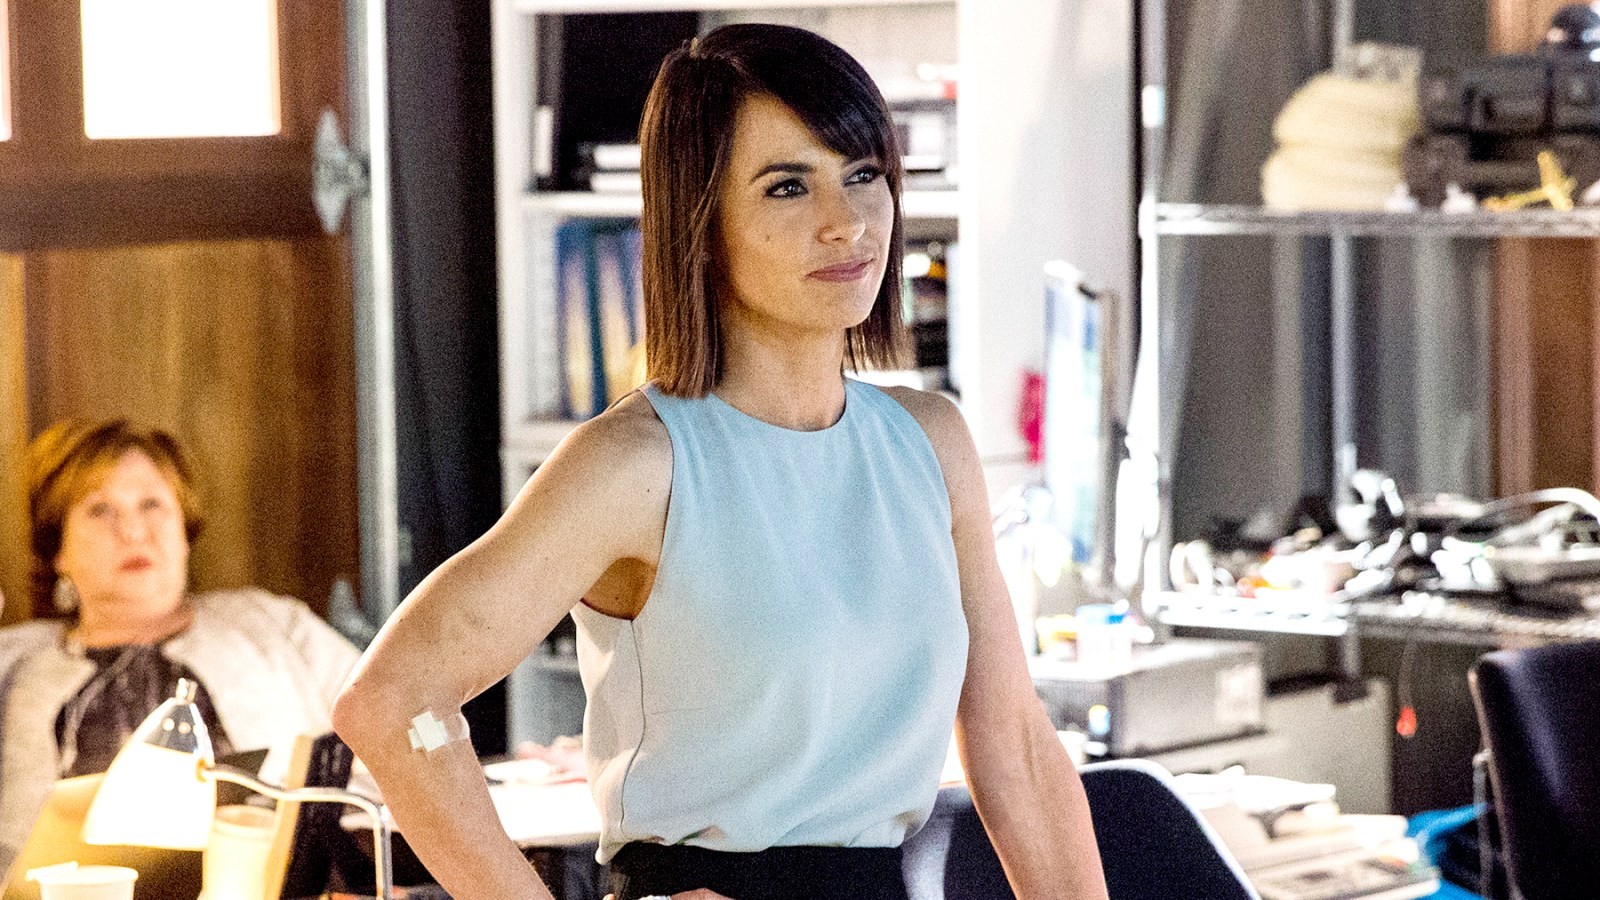 constance zimmer Archives - Us Weekly